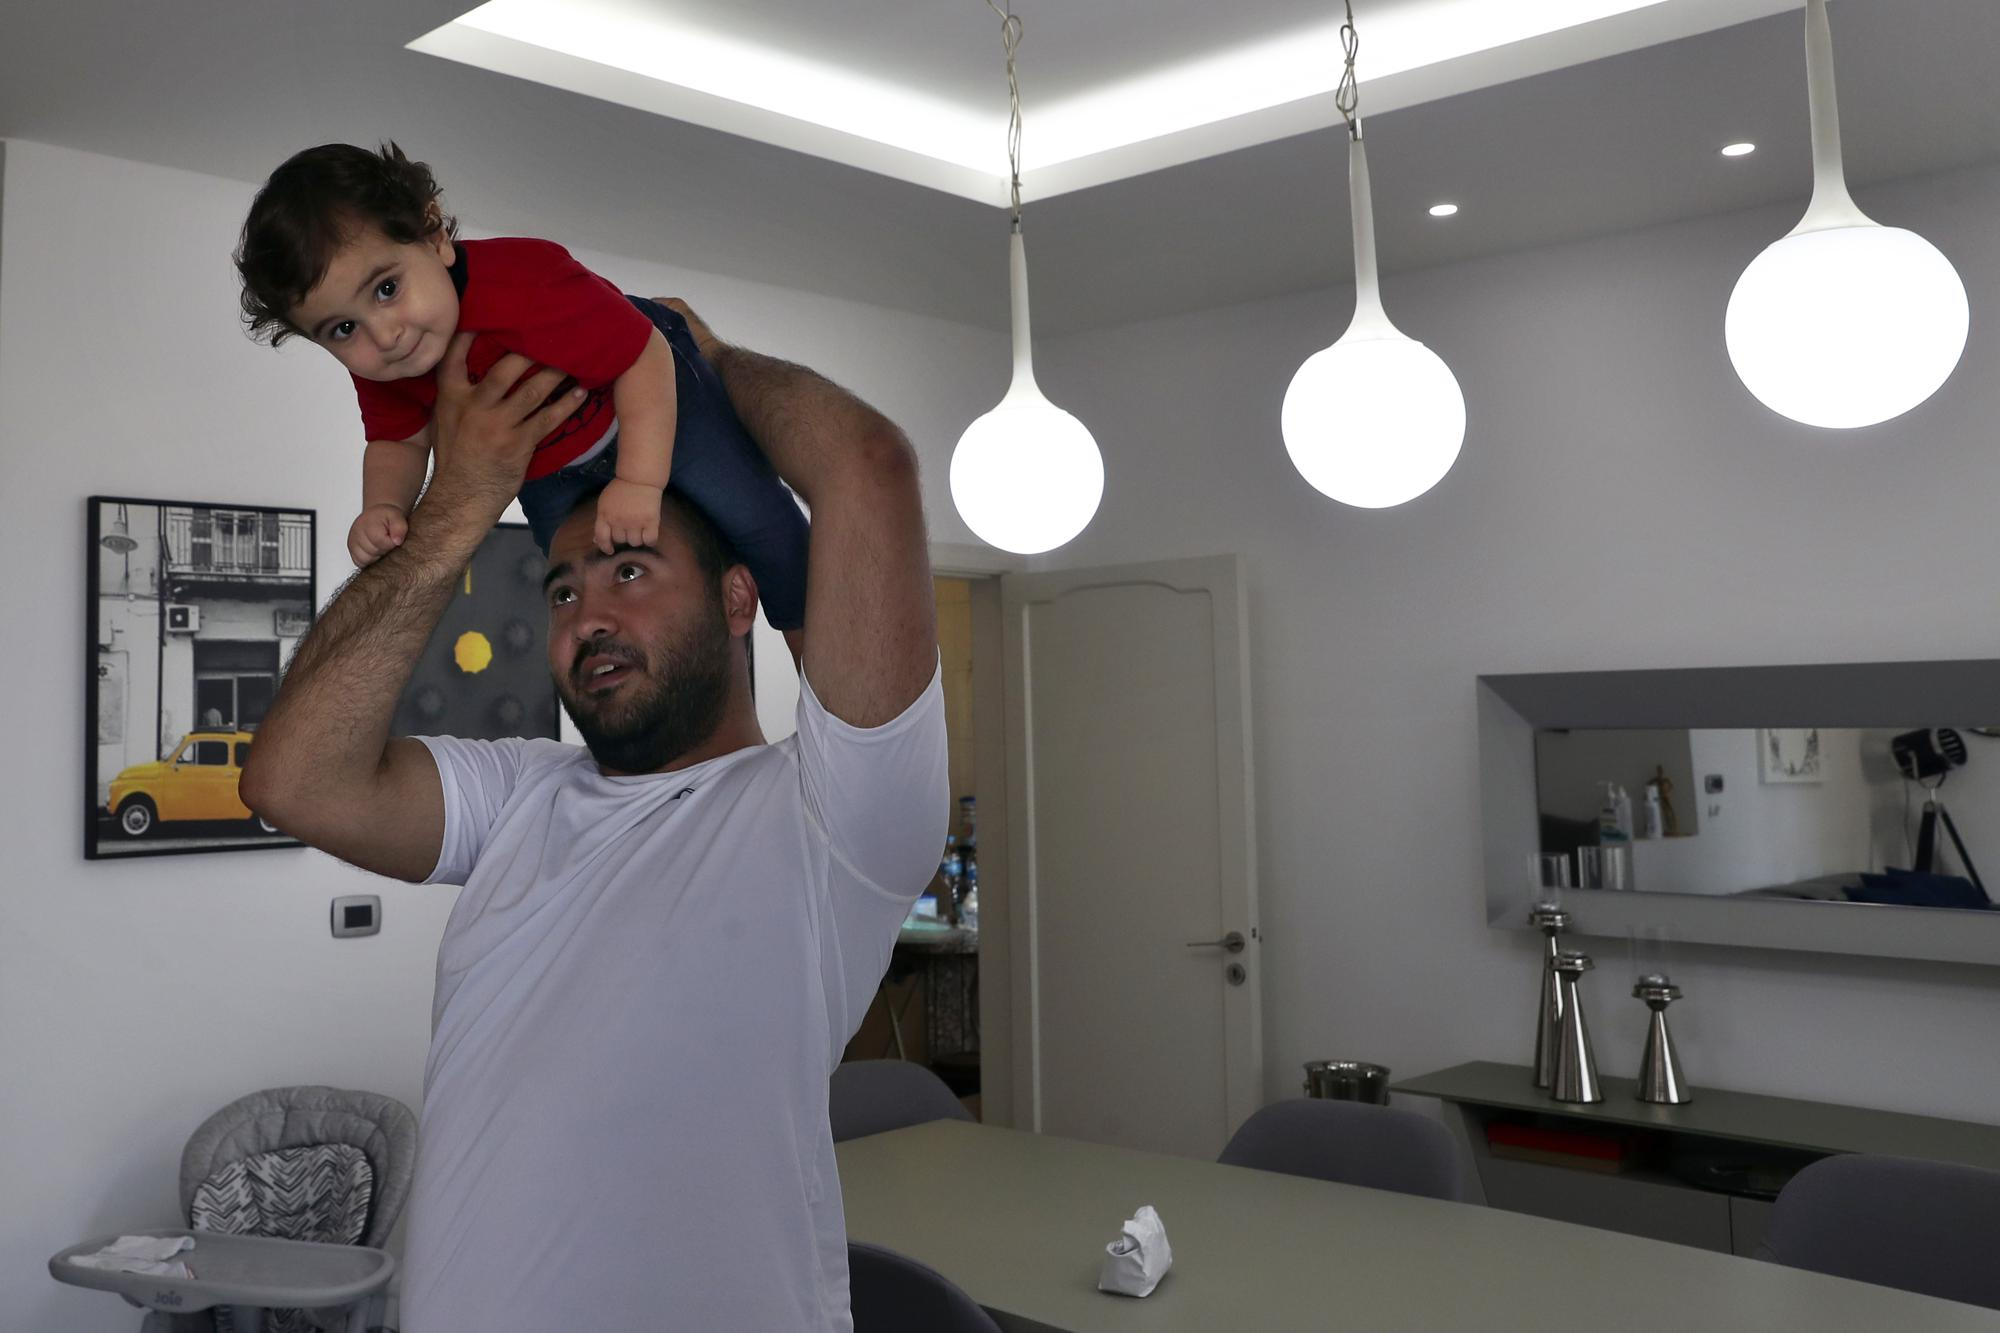 Edmond Khnaisser holds up his son, one-year-old Georges, at his house in the town of Jal el-Dib, north of Beirut, Lebanon, Tuesday, July 10, 2021. Khnaisser's wife, Emmanuelle, was about to give birth to her first son and was in the last stages of labor when the massive blast tore through the hospital, smashing windows, doors and machines in the operations room and riddling her lower body with tiny pieces of flying glass. (AP Photo/Bilal Hussein)